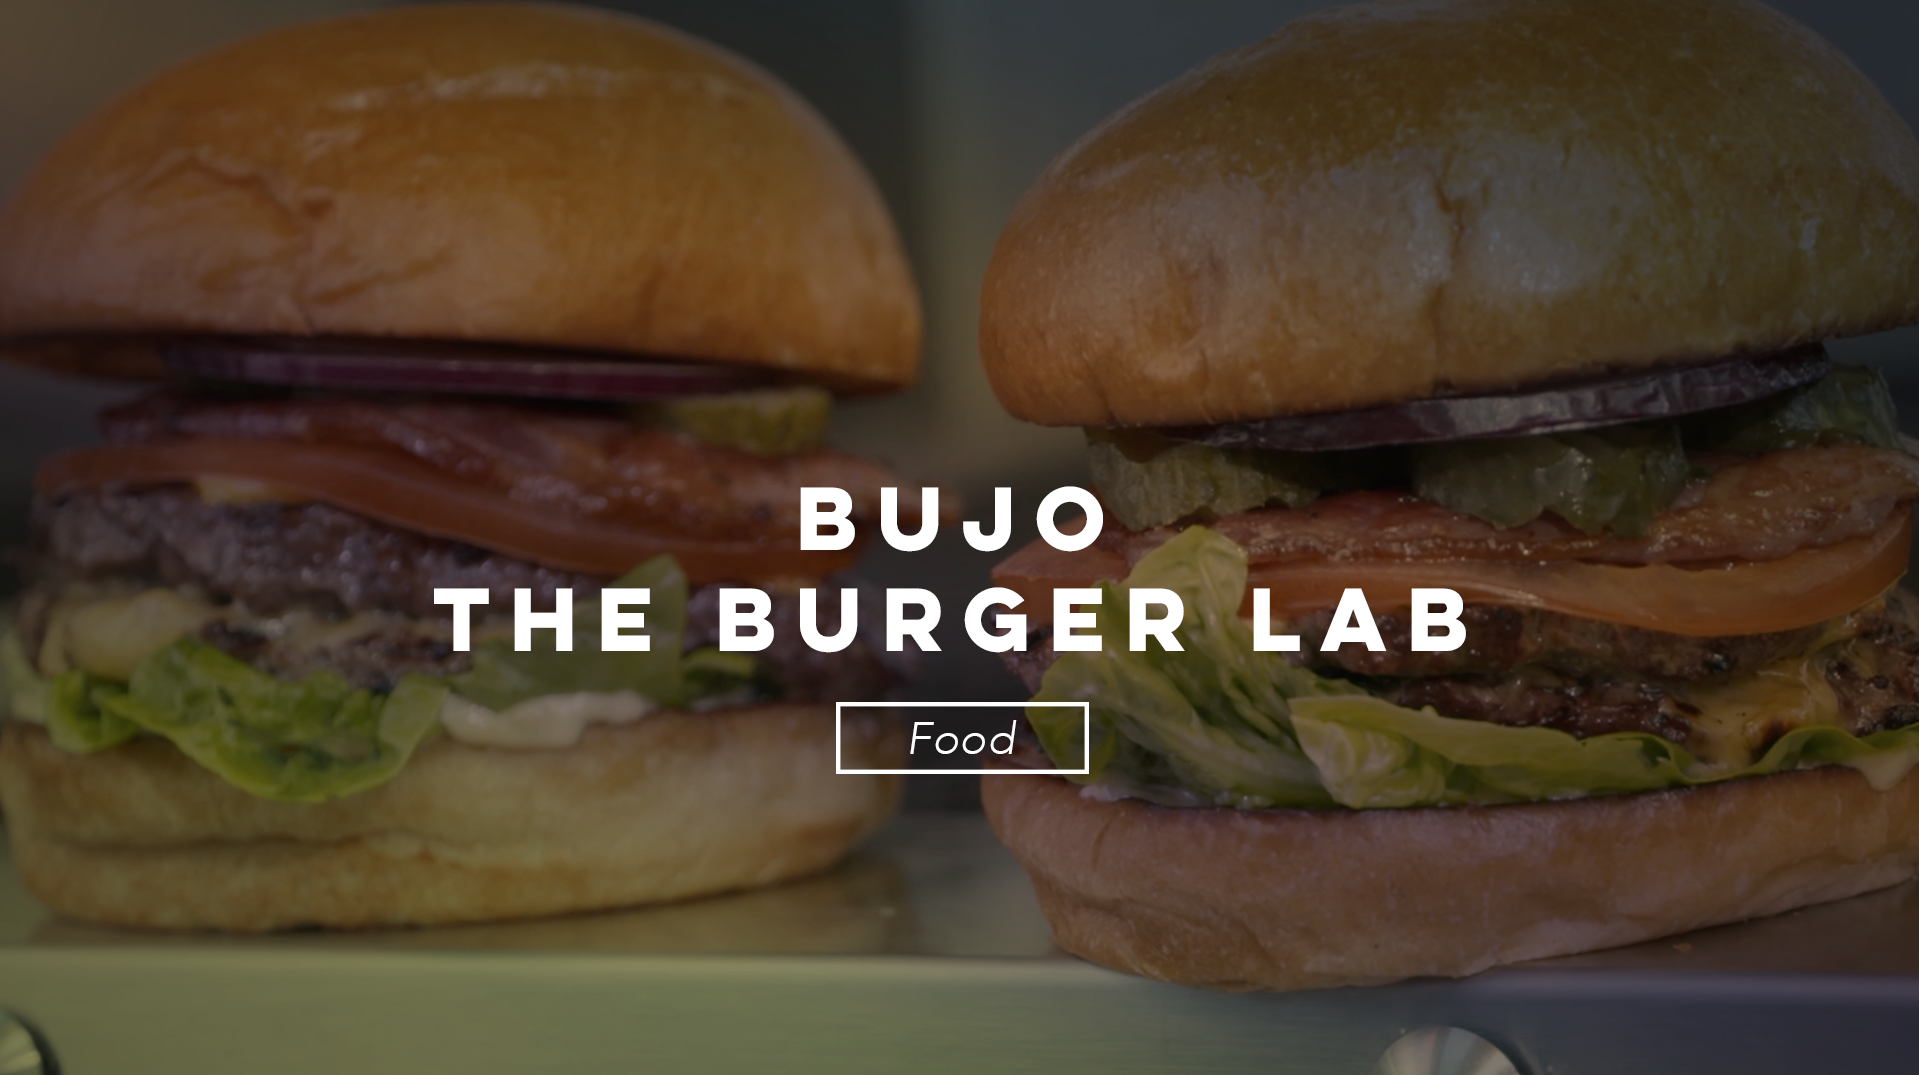 Luke Duggan TV Video Production BUJO the Burger Lab